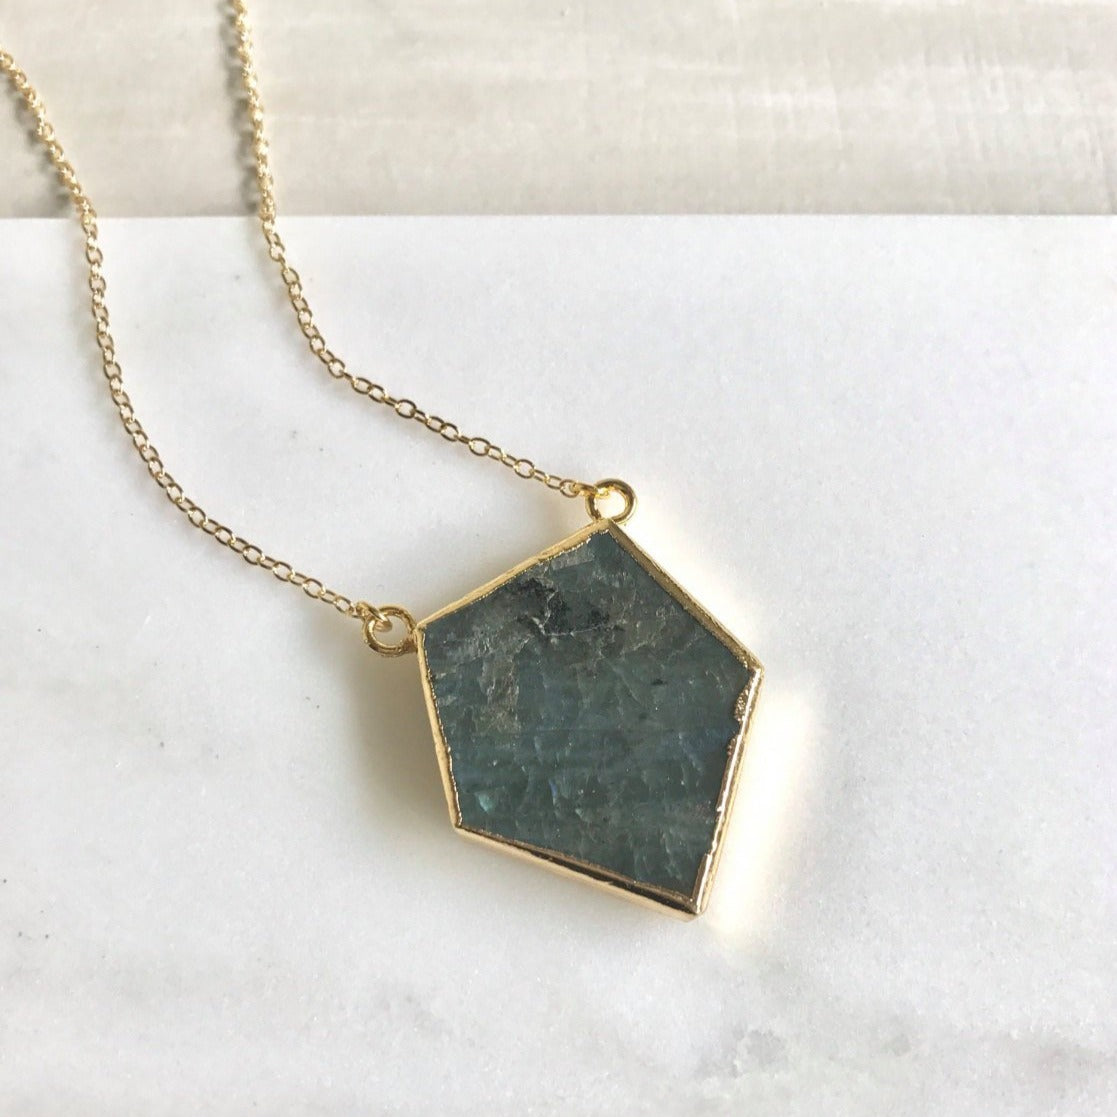 Labradorite Slice Pendant Necklace. Natural Raw Stone Necklace. Geode Necklace. Jewelry. Necklace. Gold Necklace. Crystal Necklace. Gift.